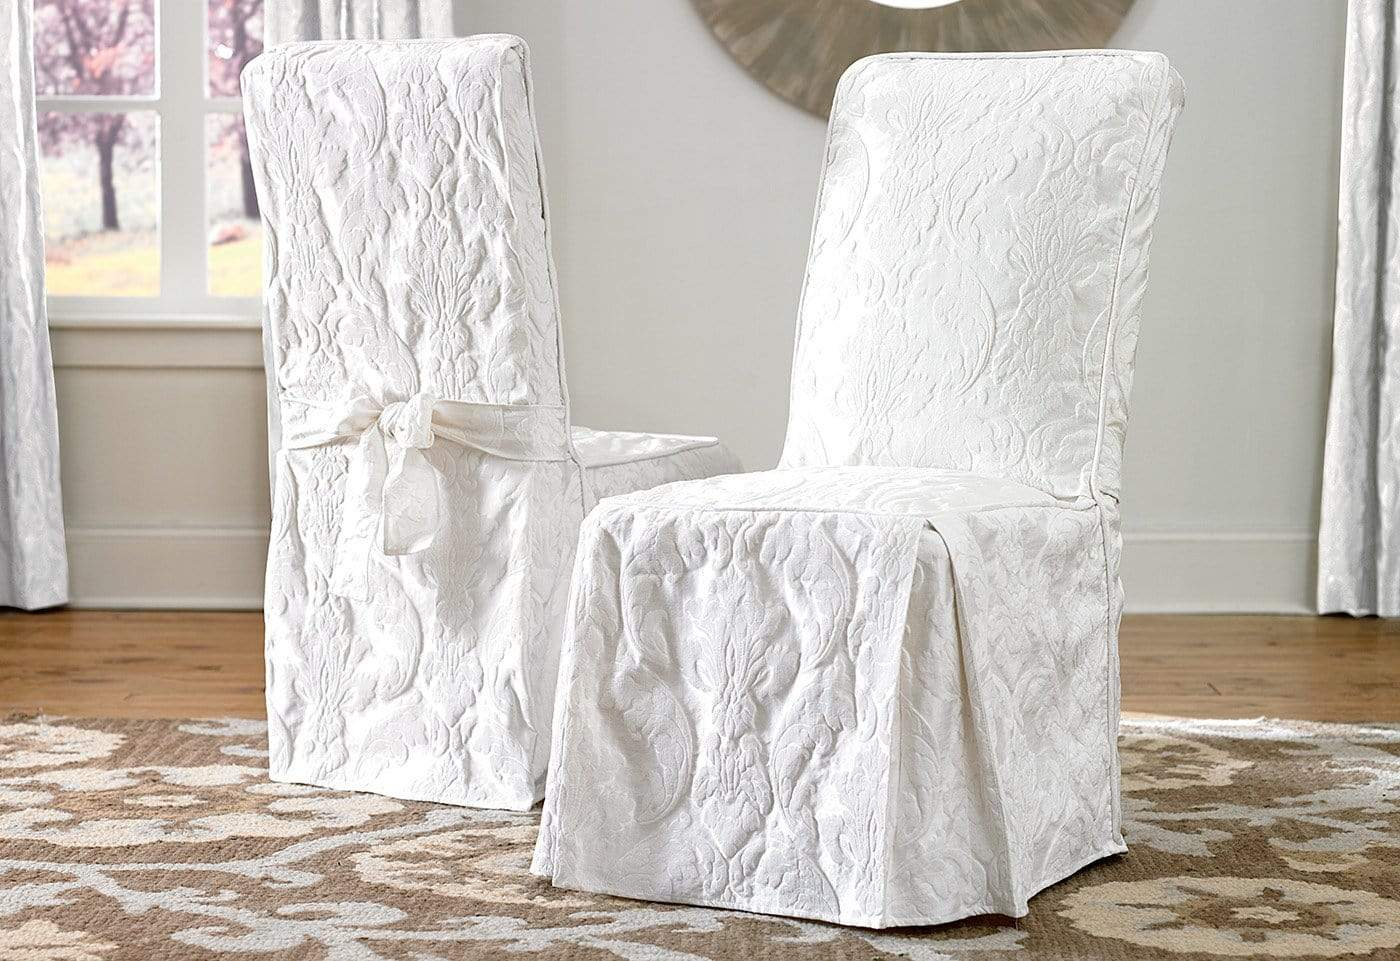 Surprising Matelasse Damask Long Dining Chair Slipcover Uwap Interior Chair Design Uwaporg